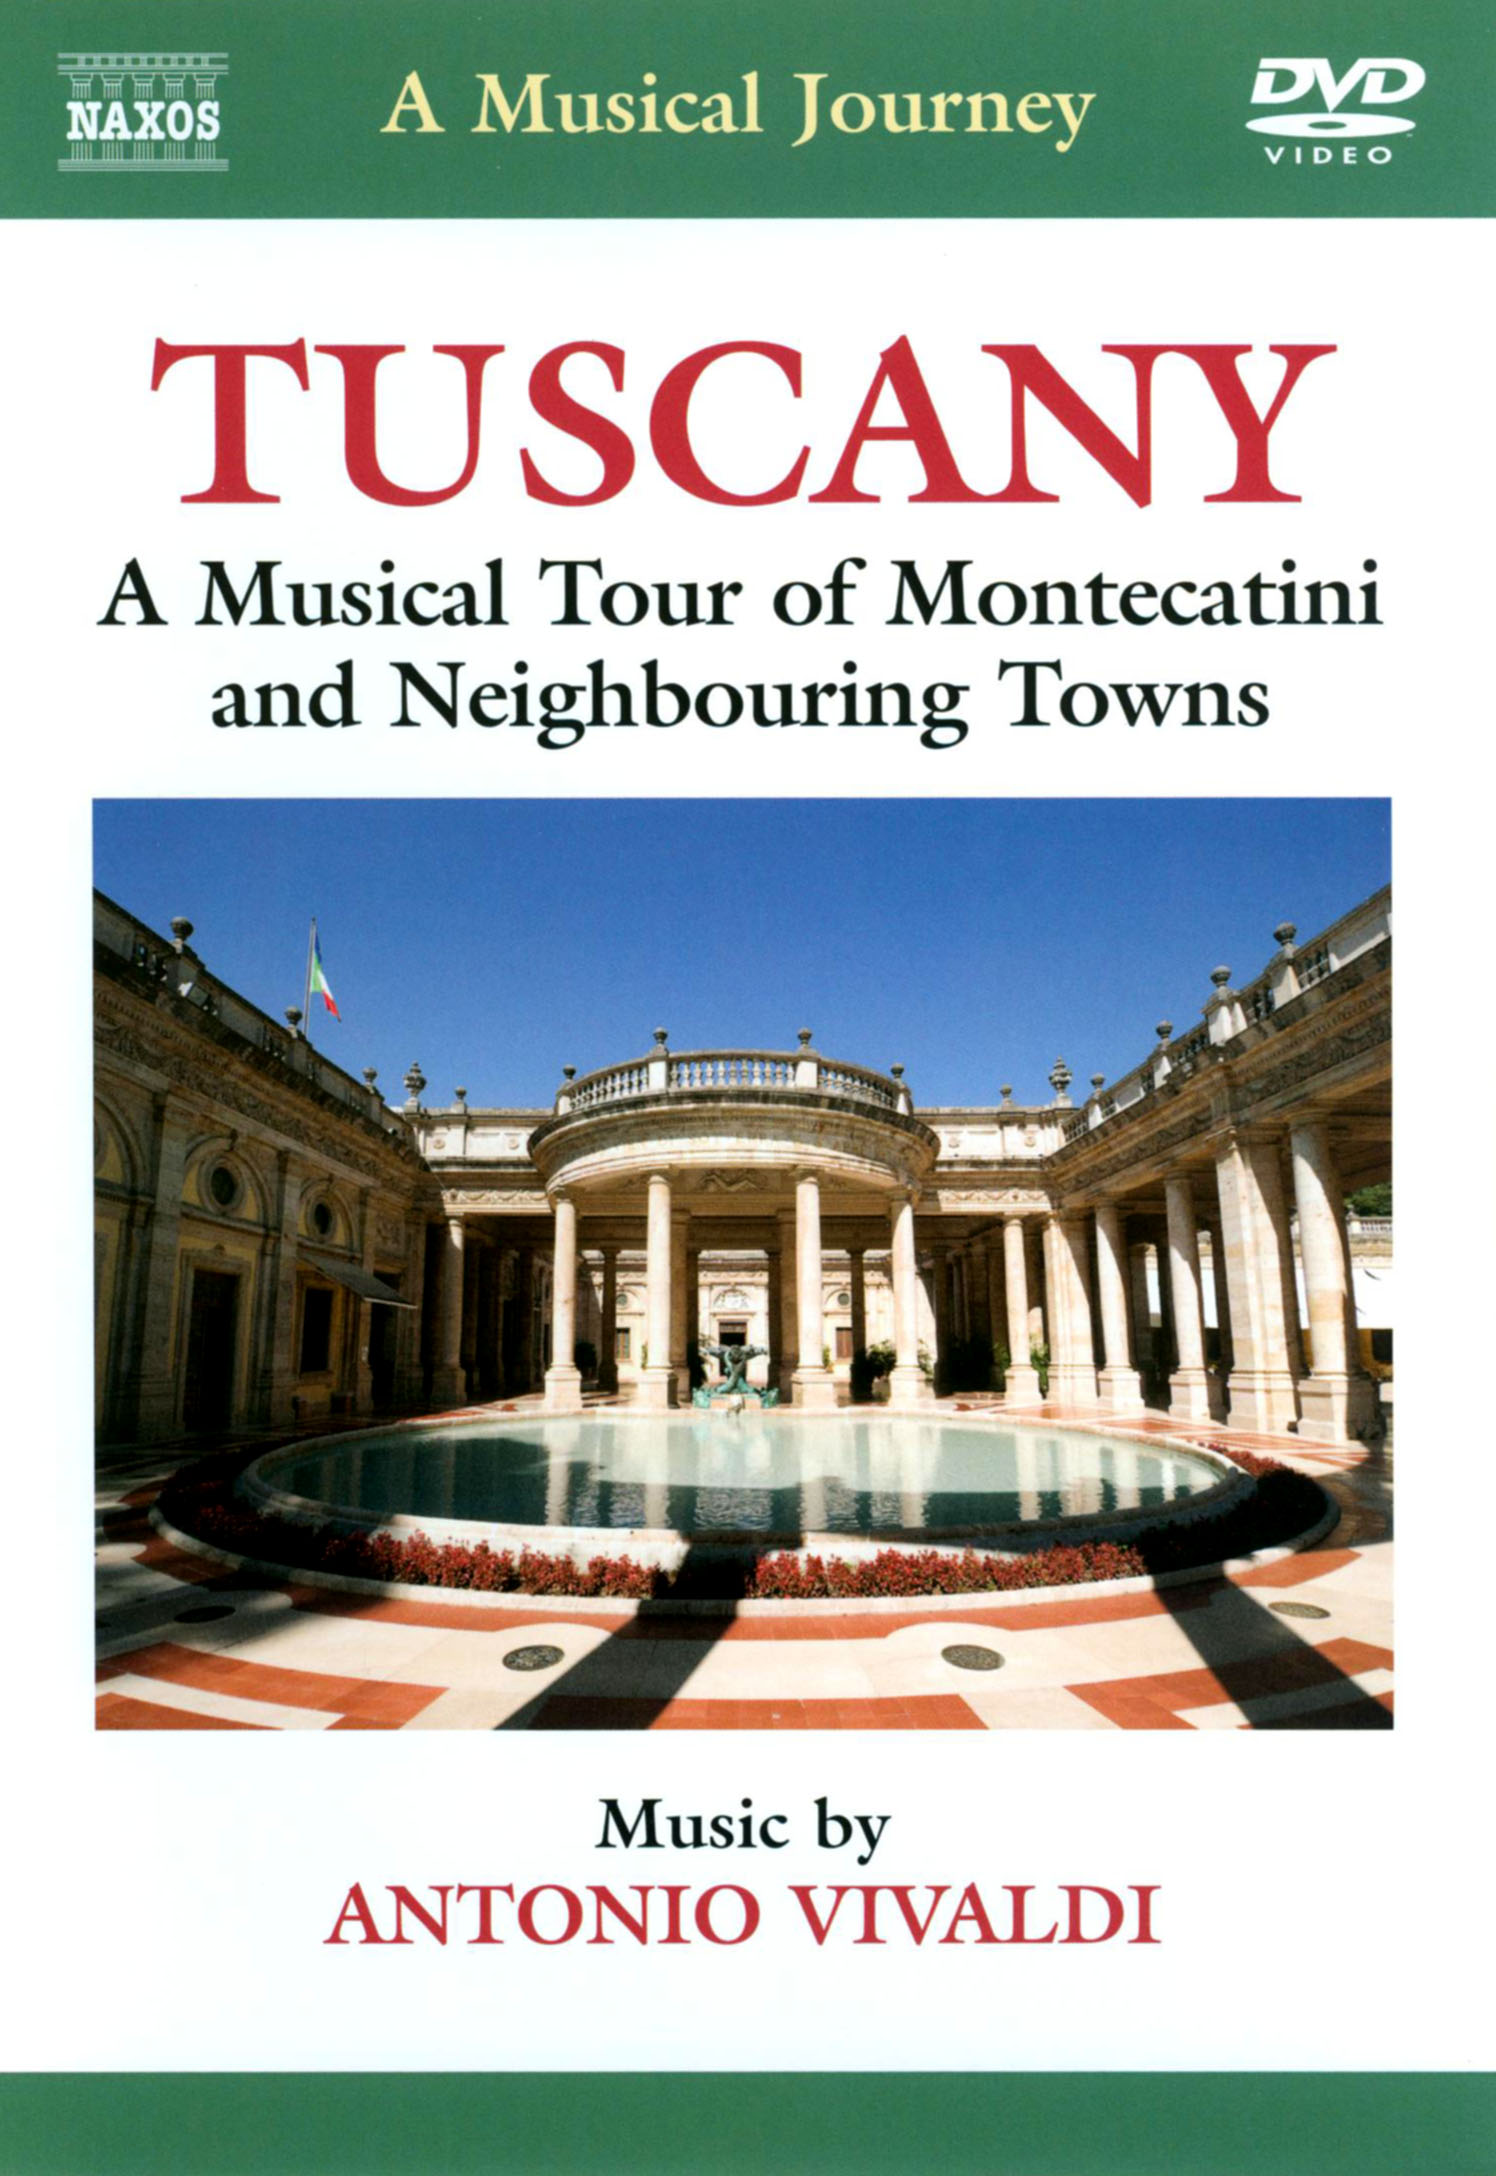 A Musical Journey: Tuscany - A Musical Tour of Montecatini and Neighboring Towns